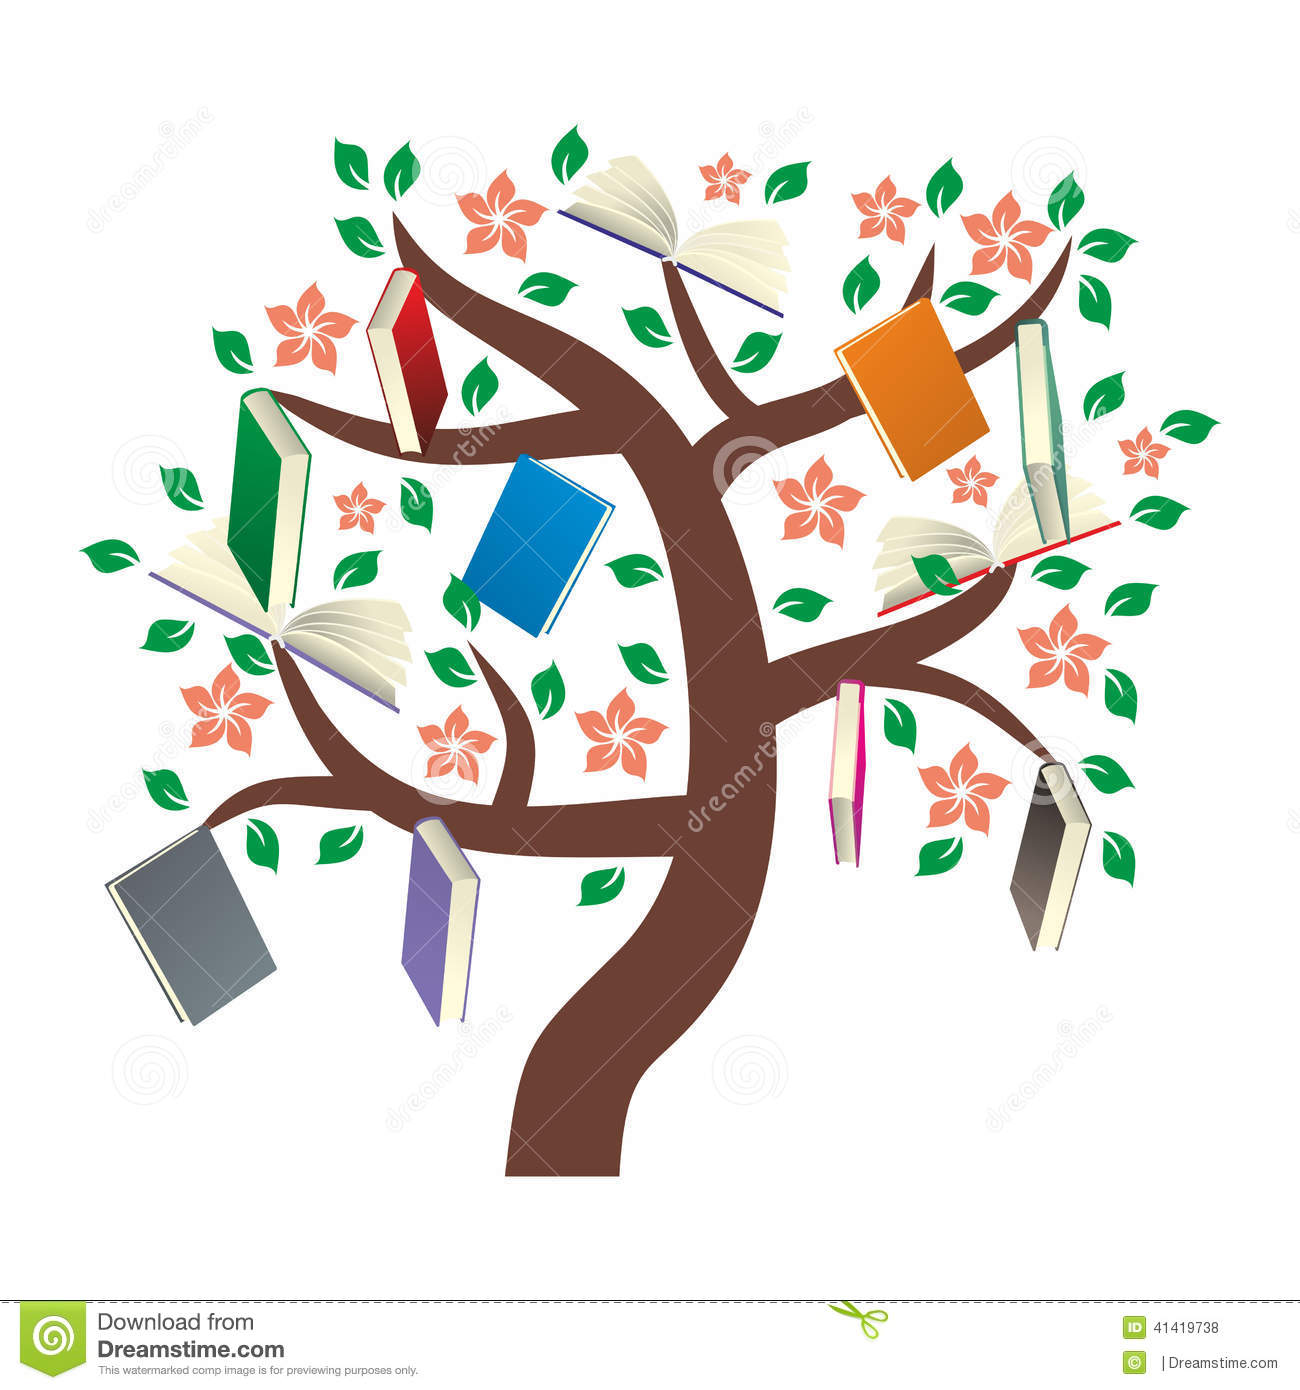 book tree clipart - photo #10